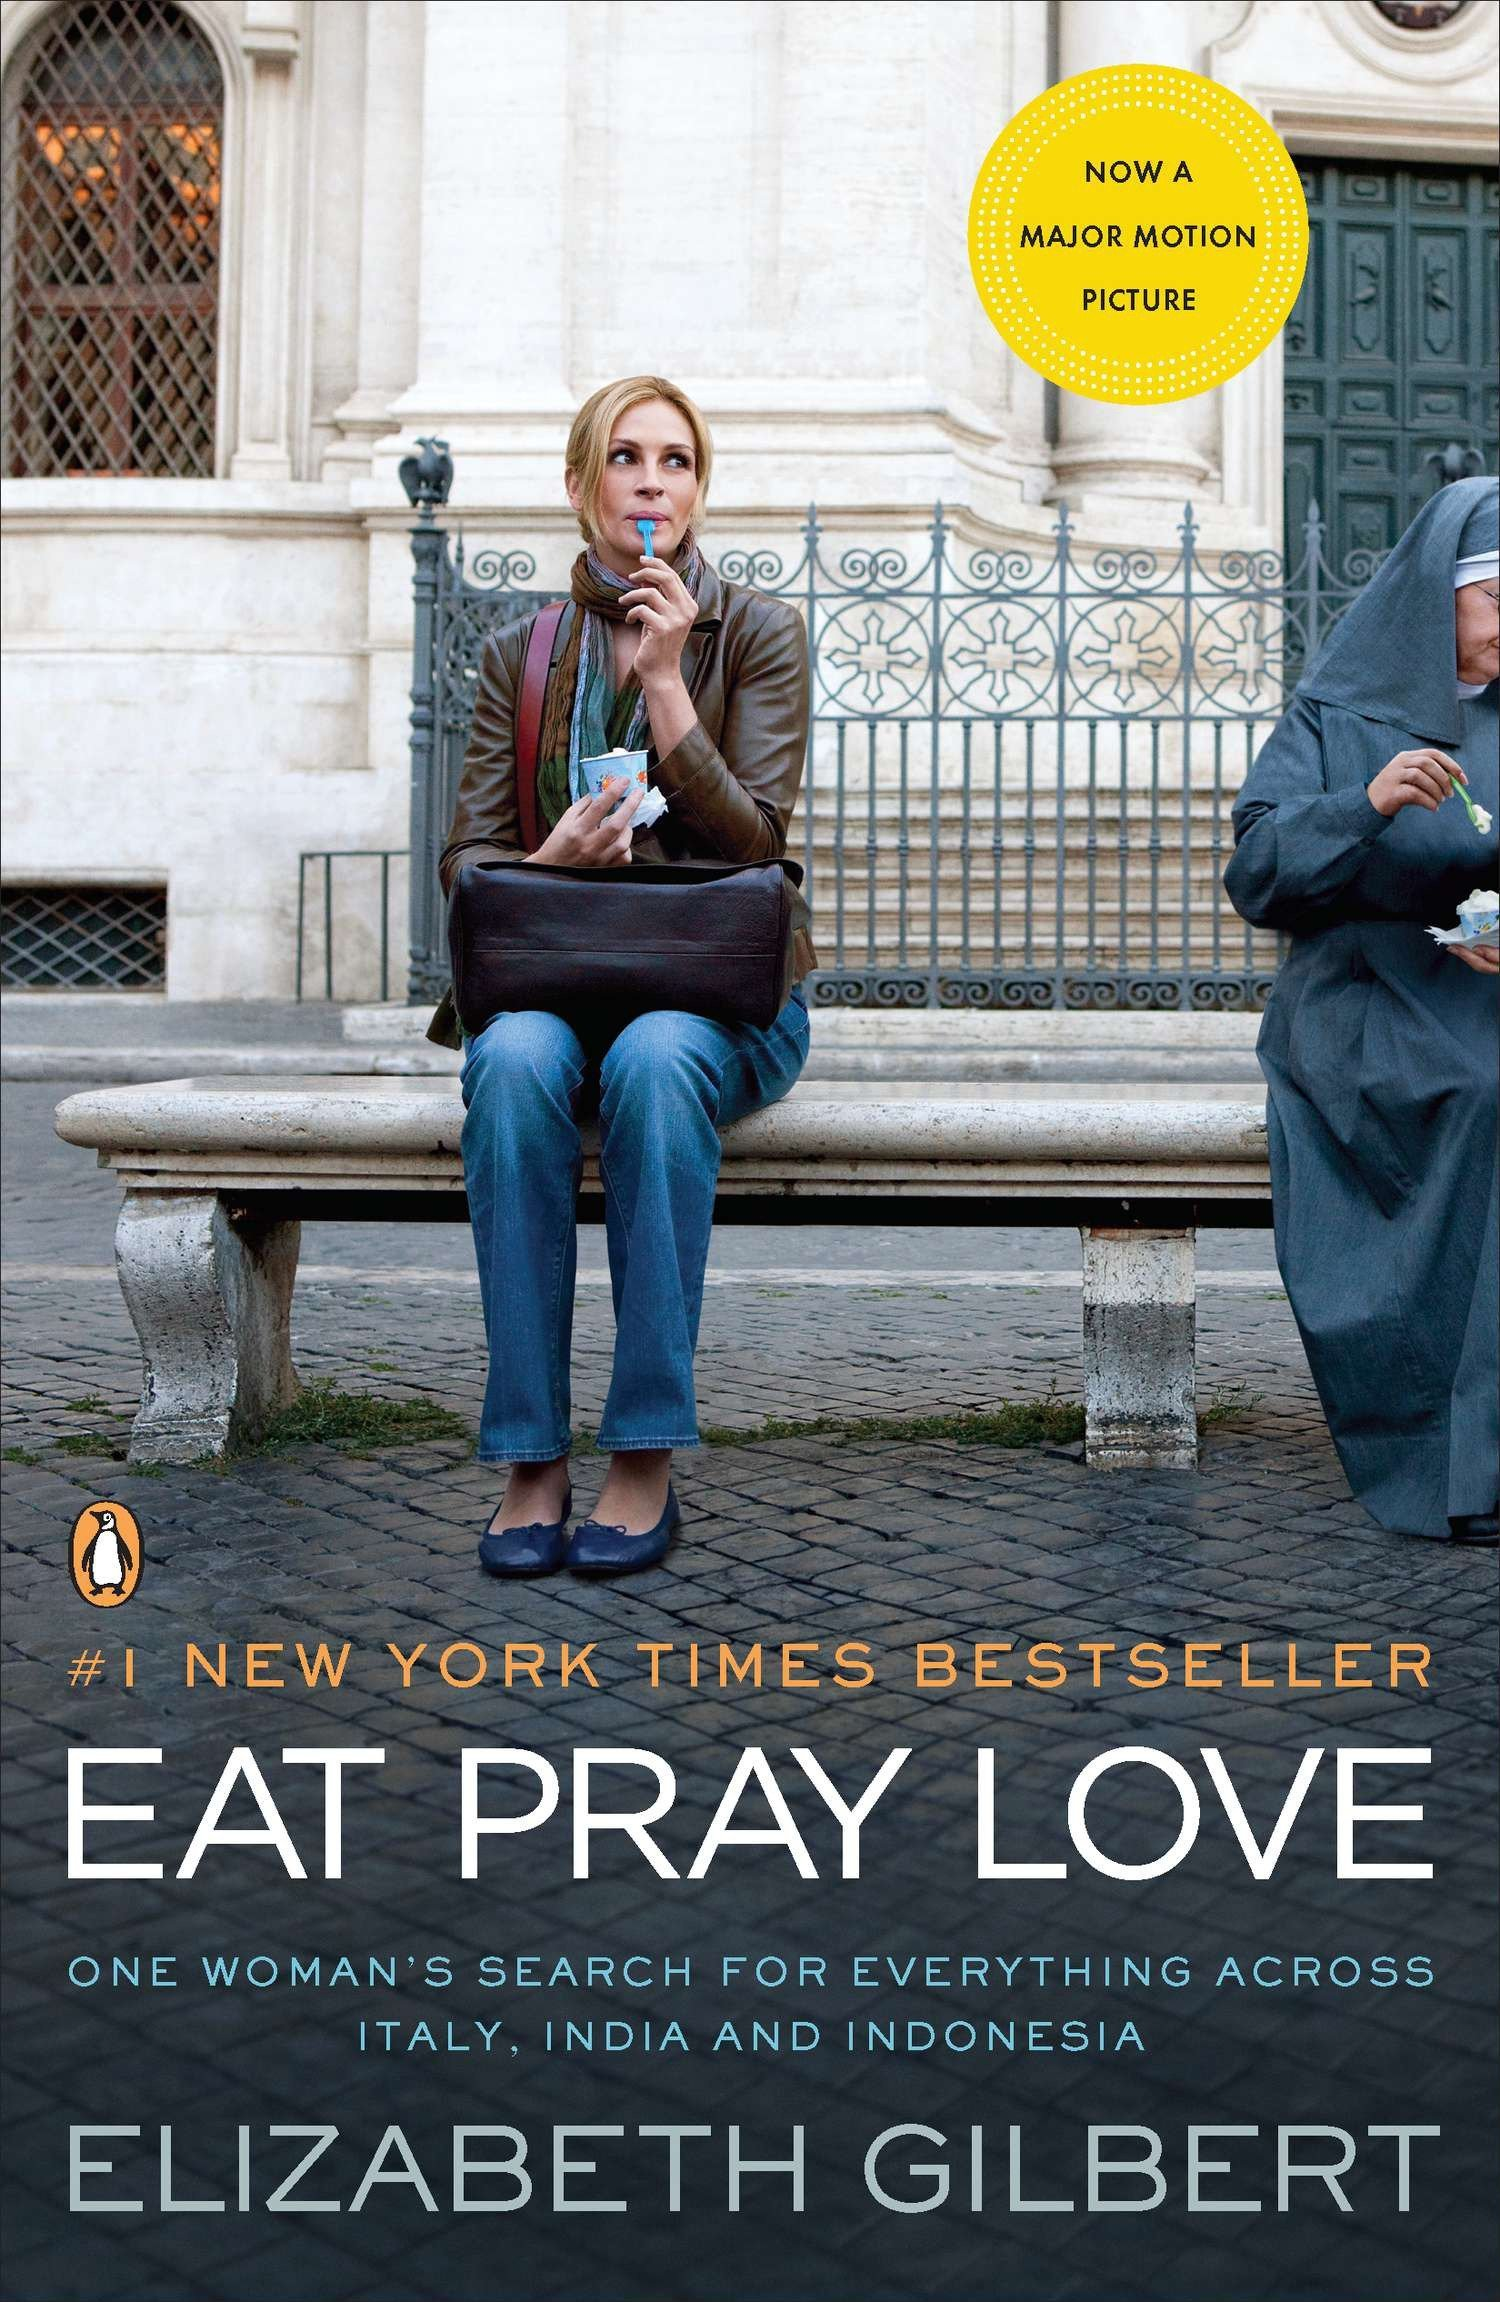 Eat Pray Love: One Woman's Search for Everything Across Italy, India and  Indonesia: Elizabeth Gilbert: 9780143118428: Amazon.com: Books